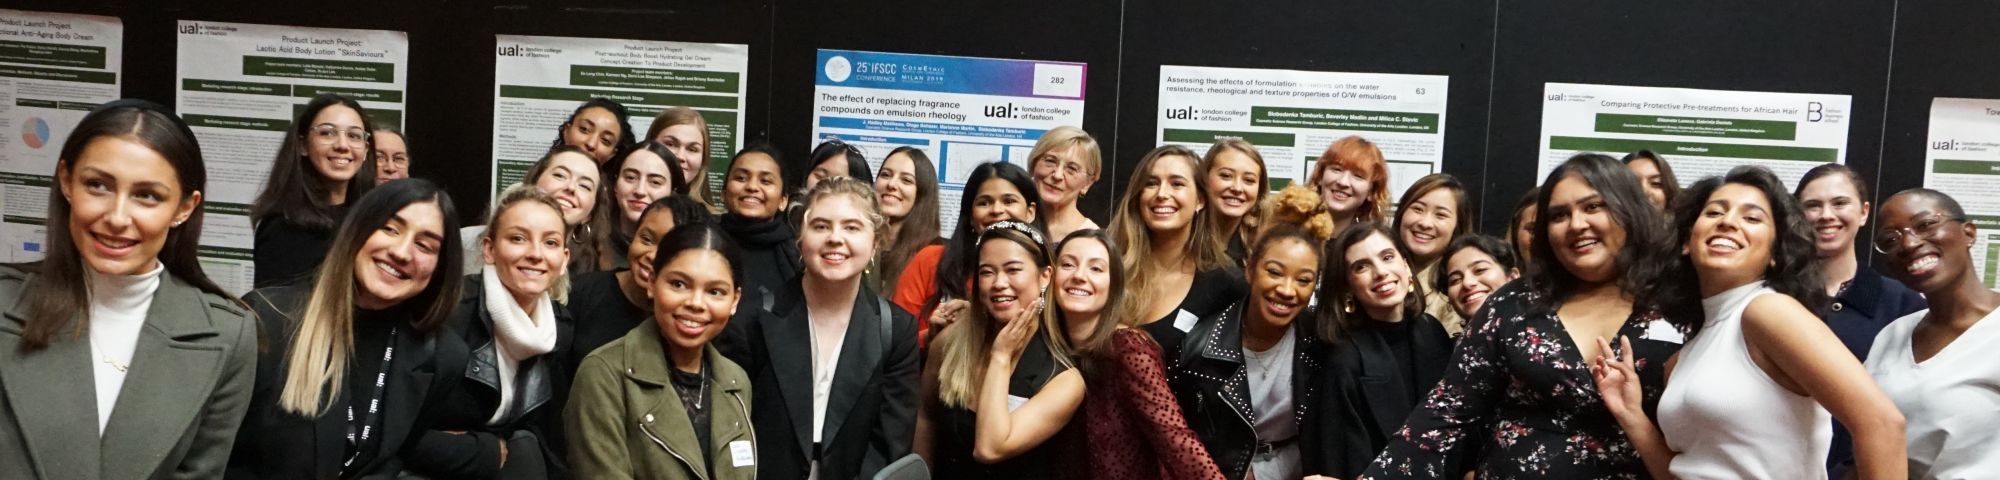 MSc Cosmetic Science Industry Day Event